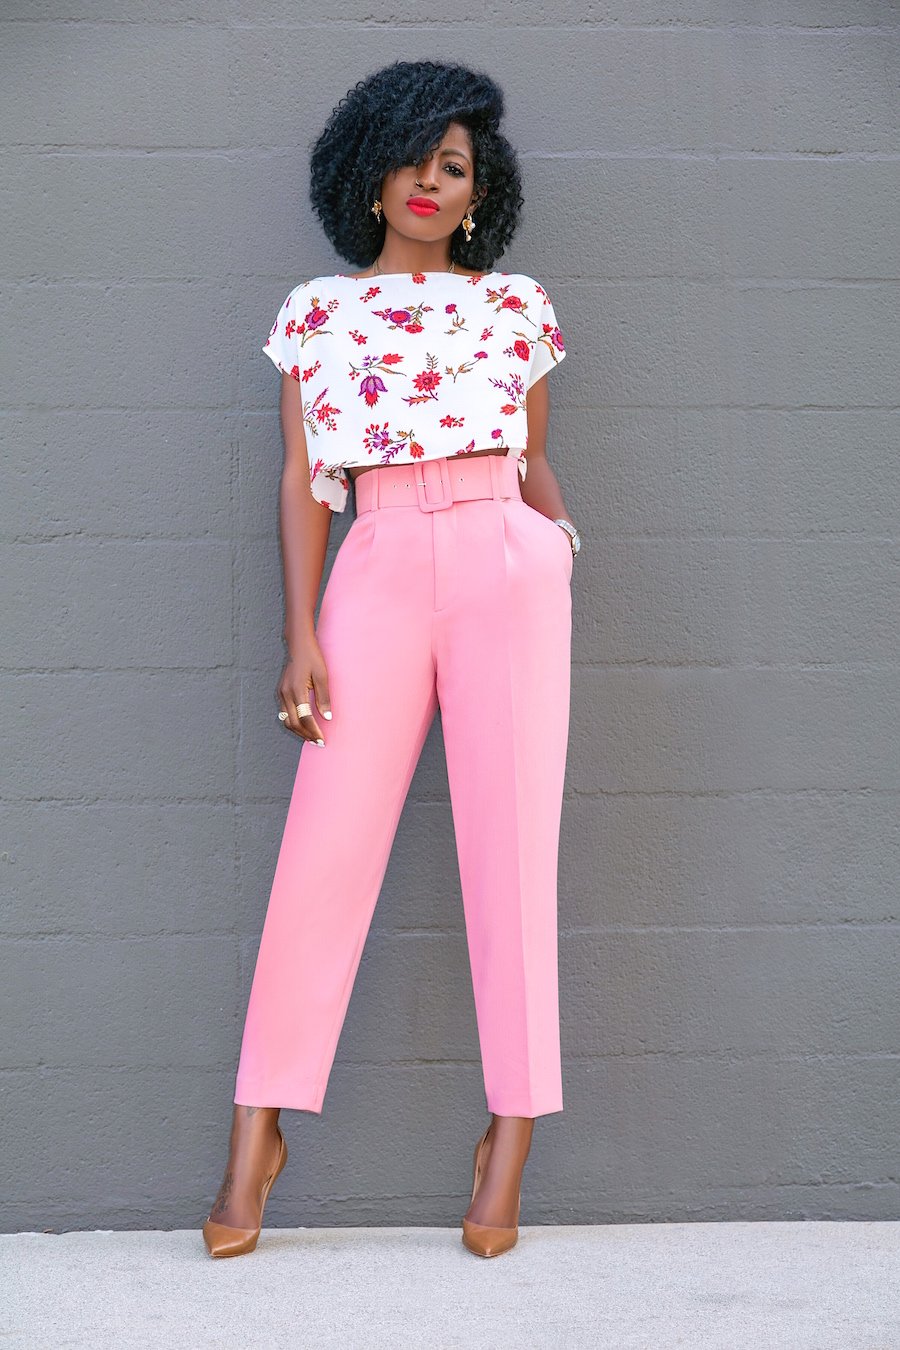 Style Pantry Floral Crop Top Belted Pegged Trousers